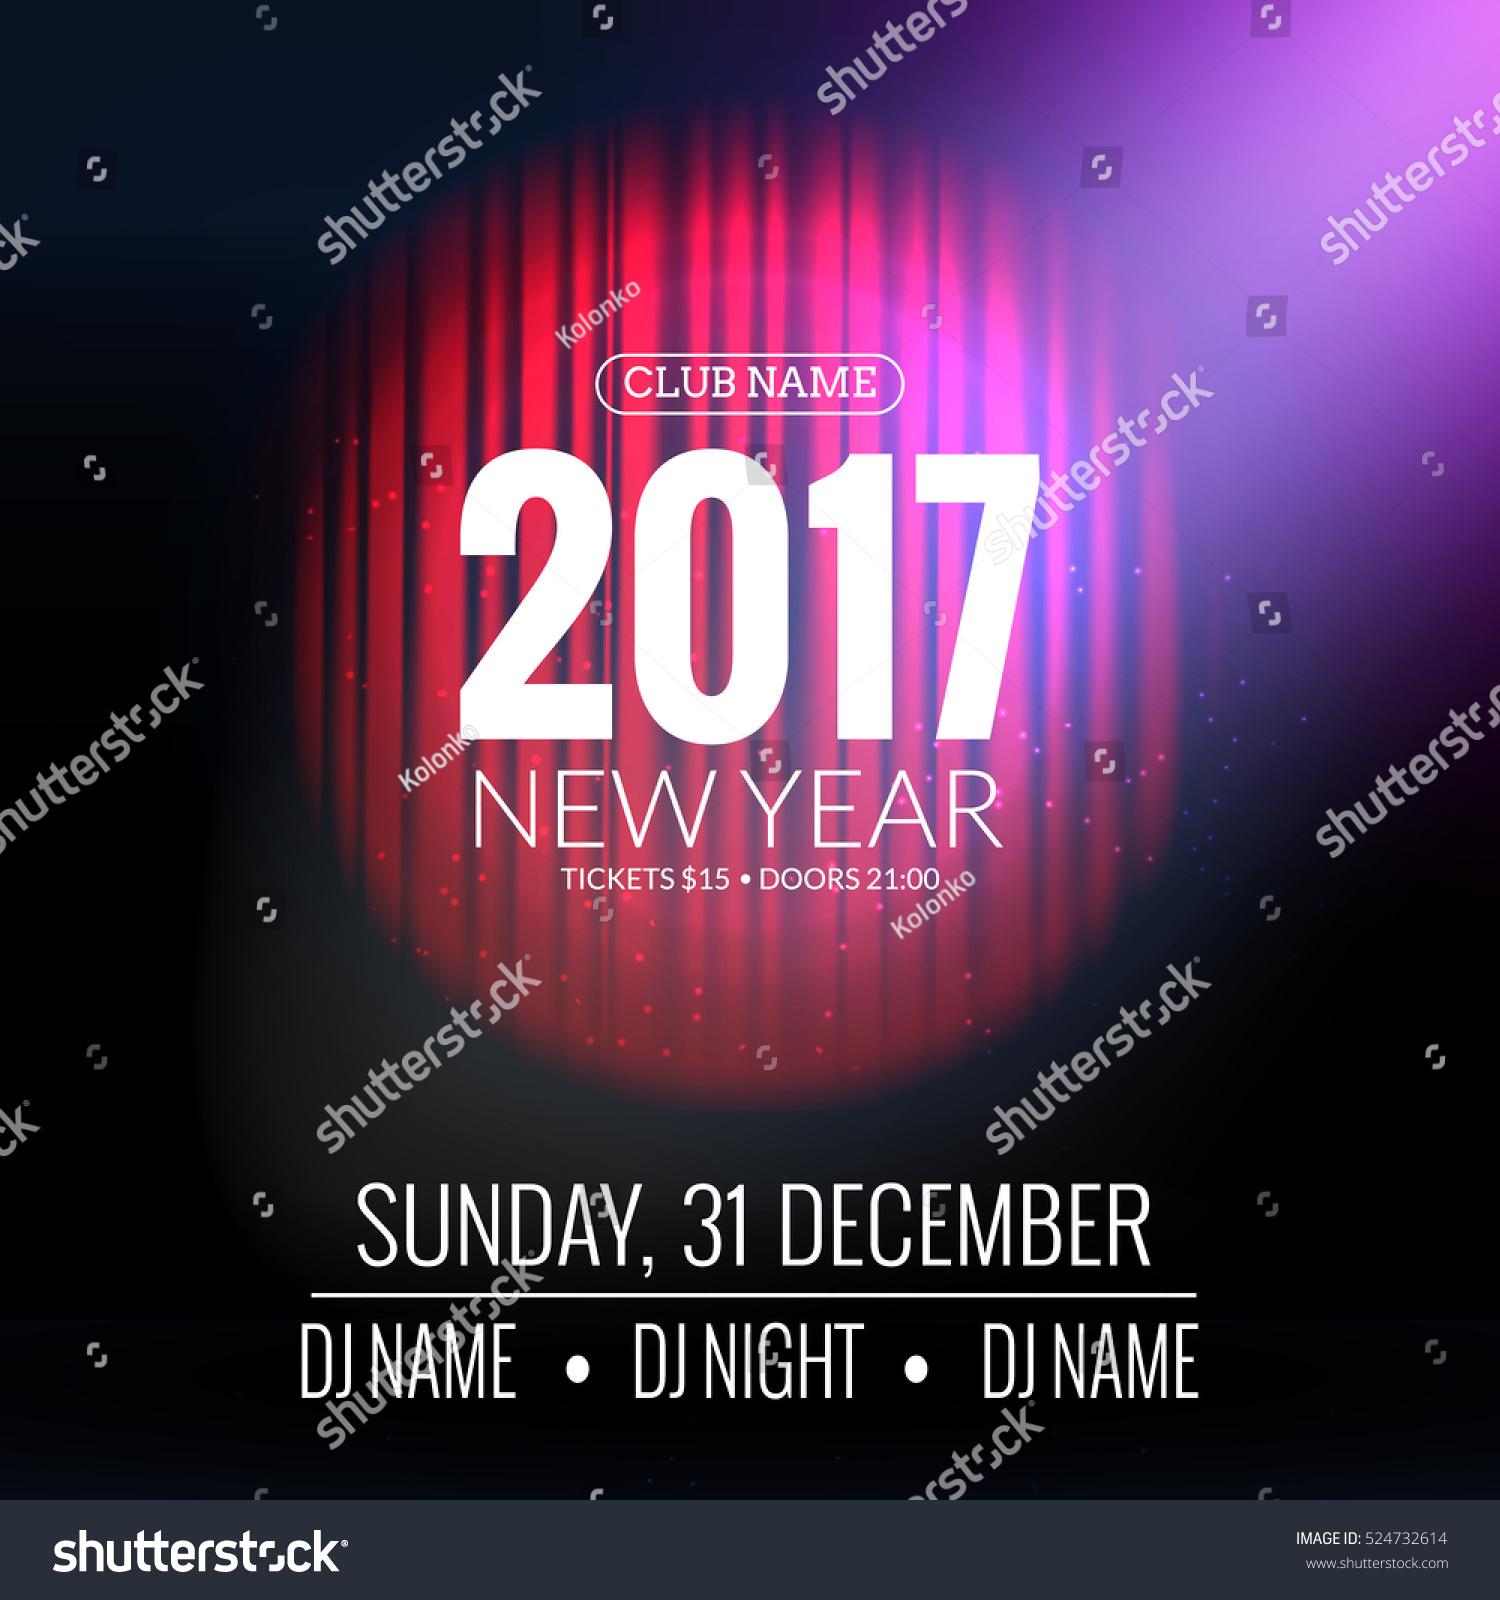 new year party design banner event celebration flyer template with red curtains new year